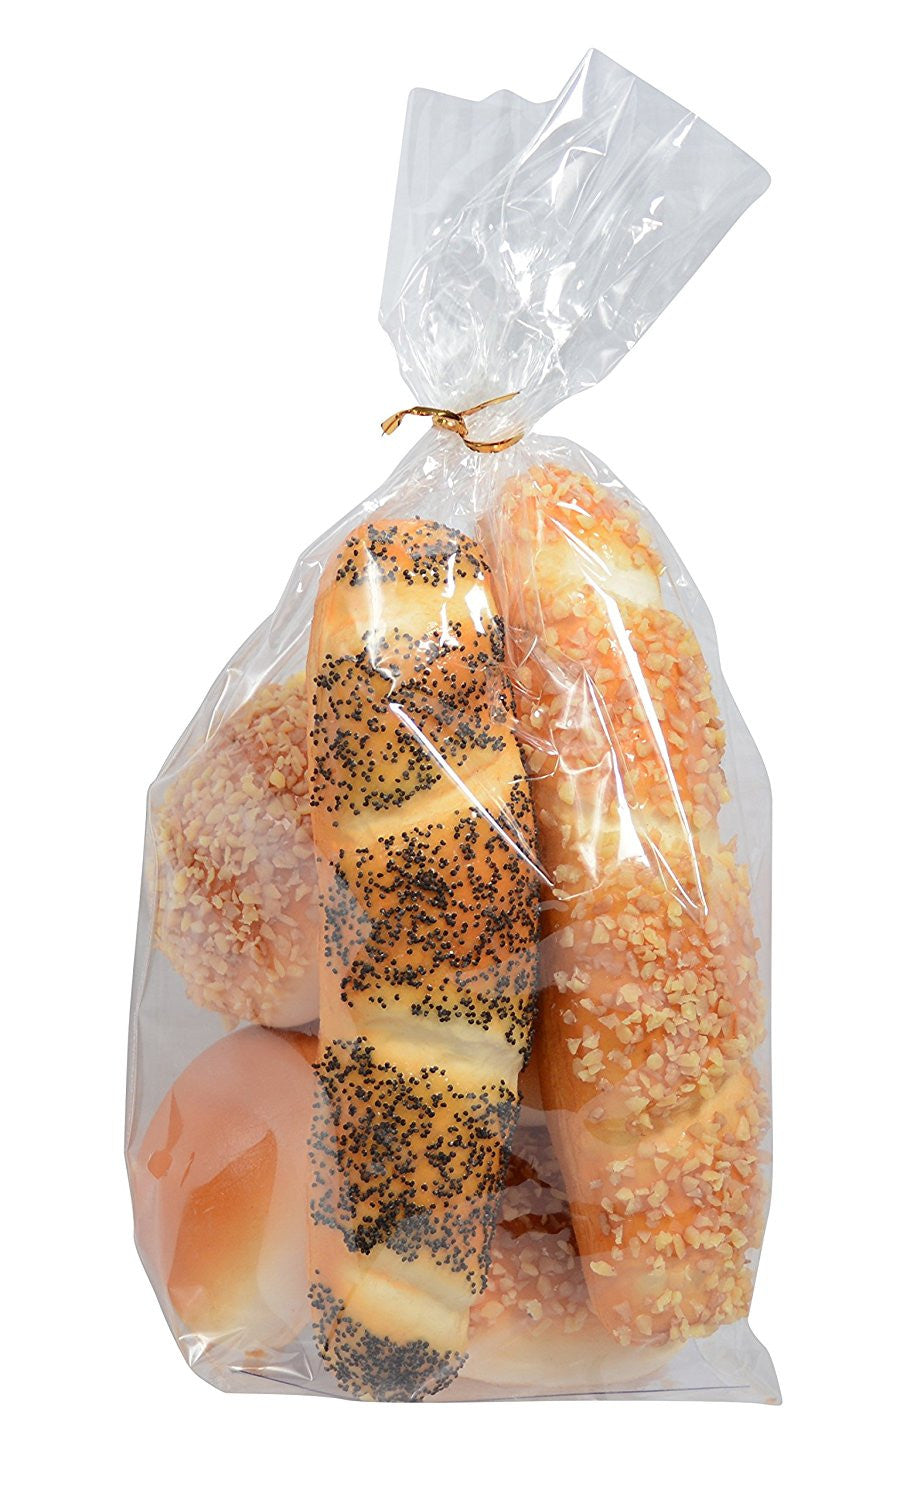 11b0414a6ac Artificial Bread and Rolls - Fake Bread and Rolls For Display, 6 Pieces